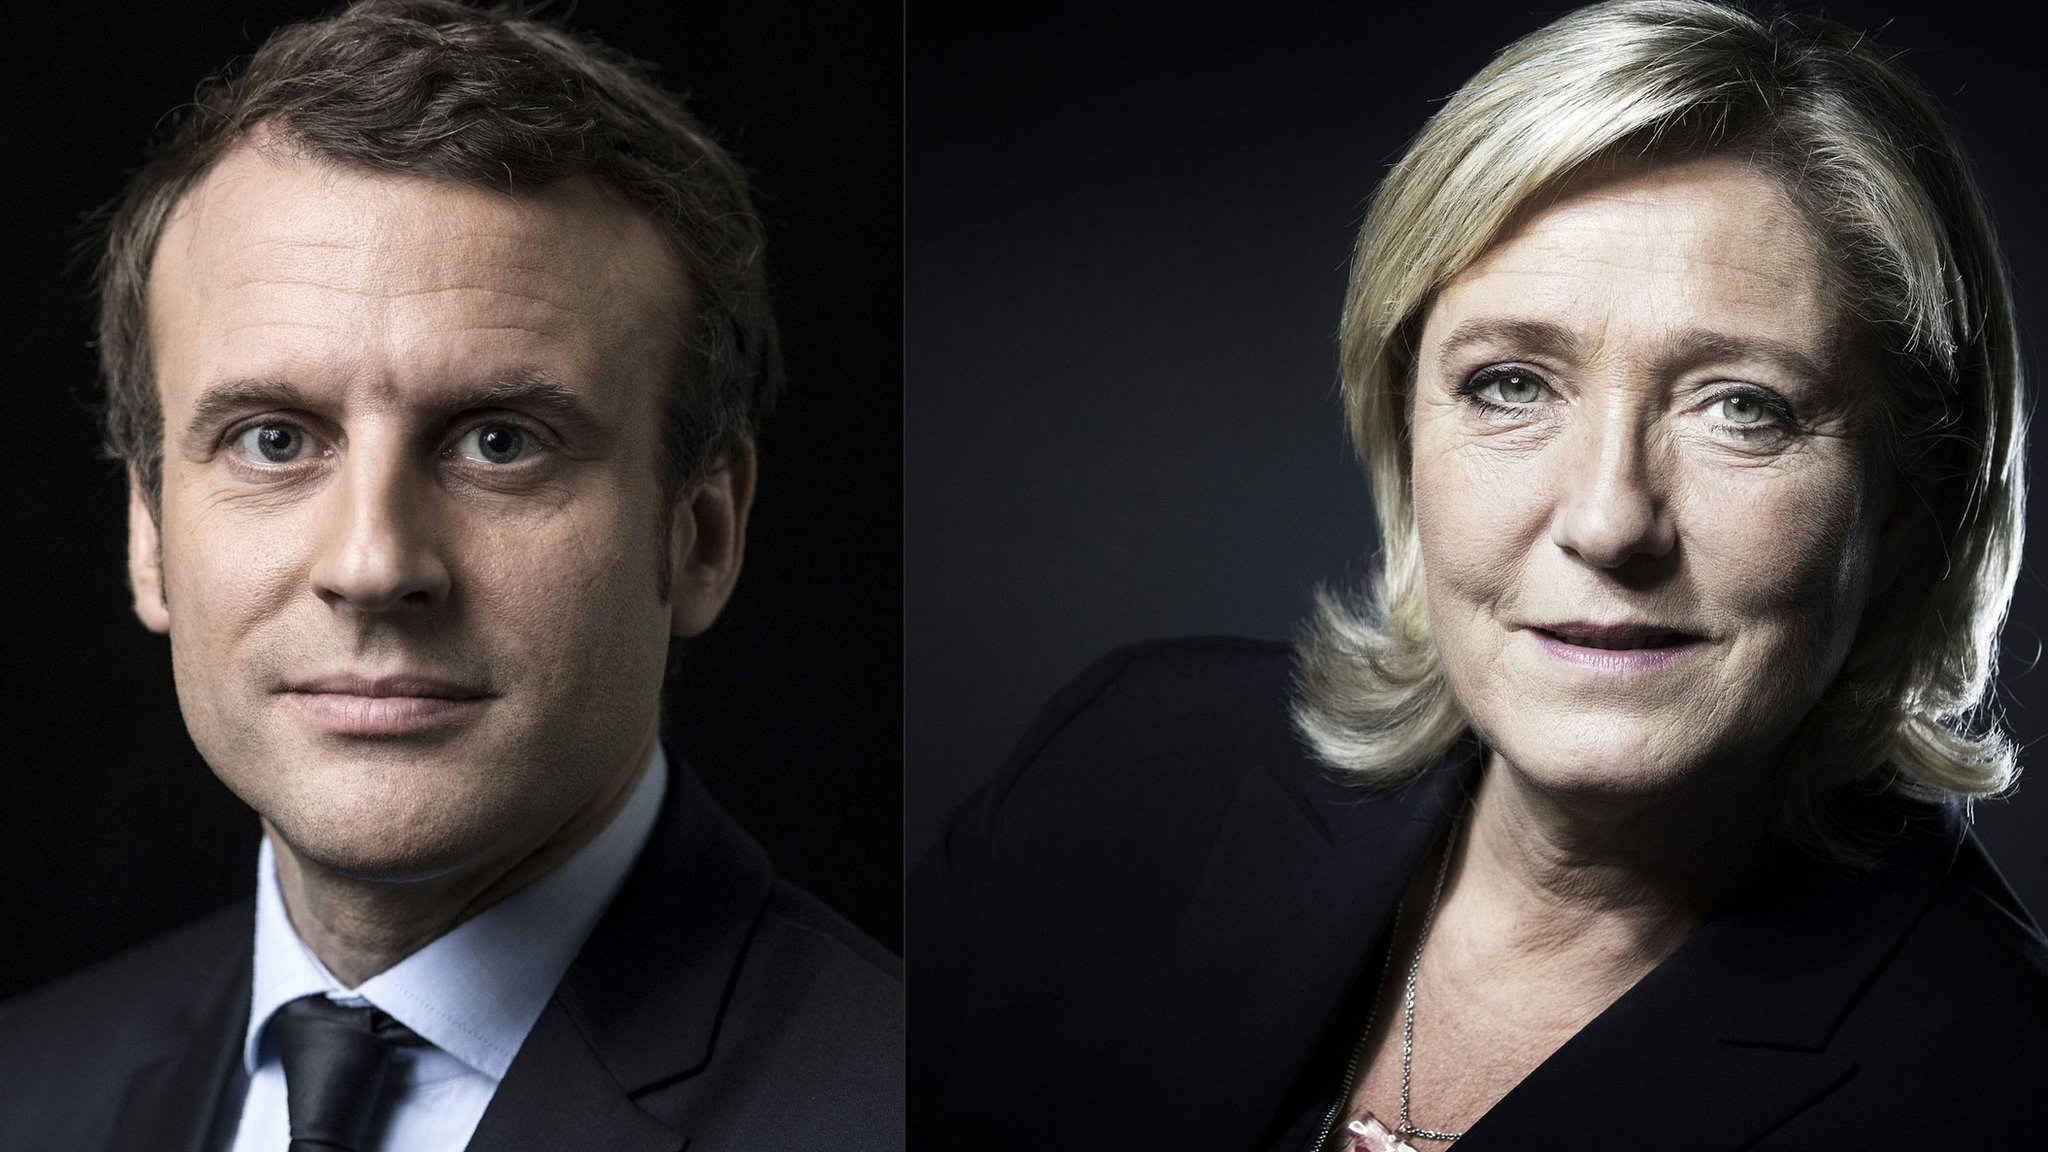 French election: Emmanuel Macron and Marine Le Pen to fight for presidency